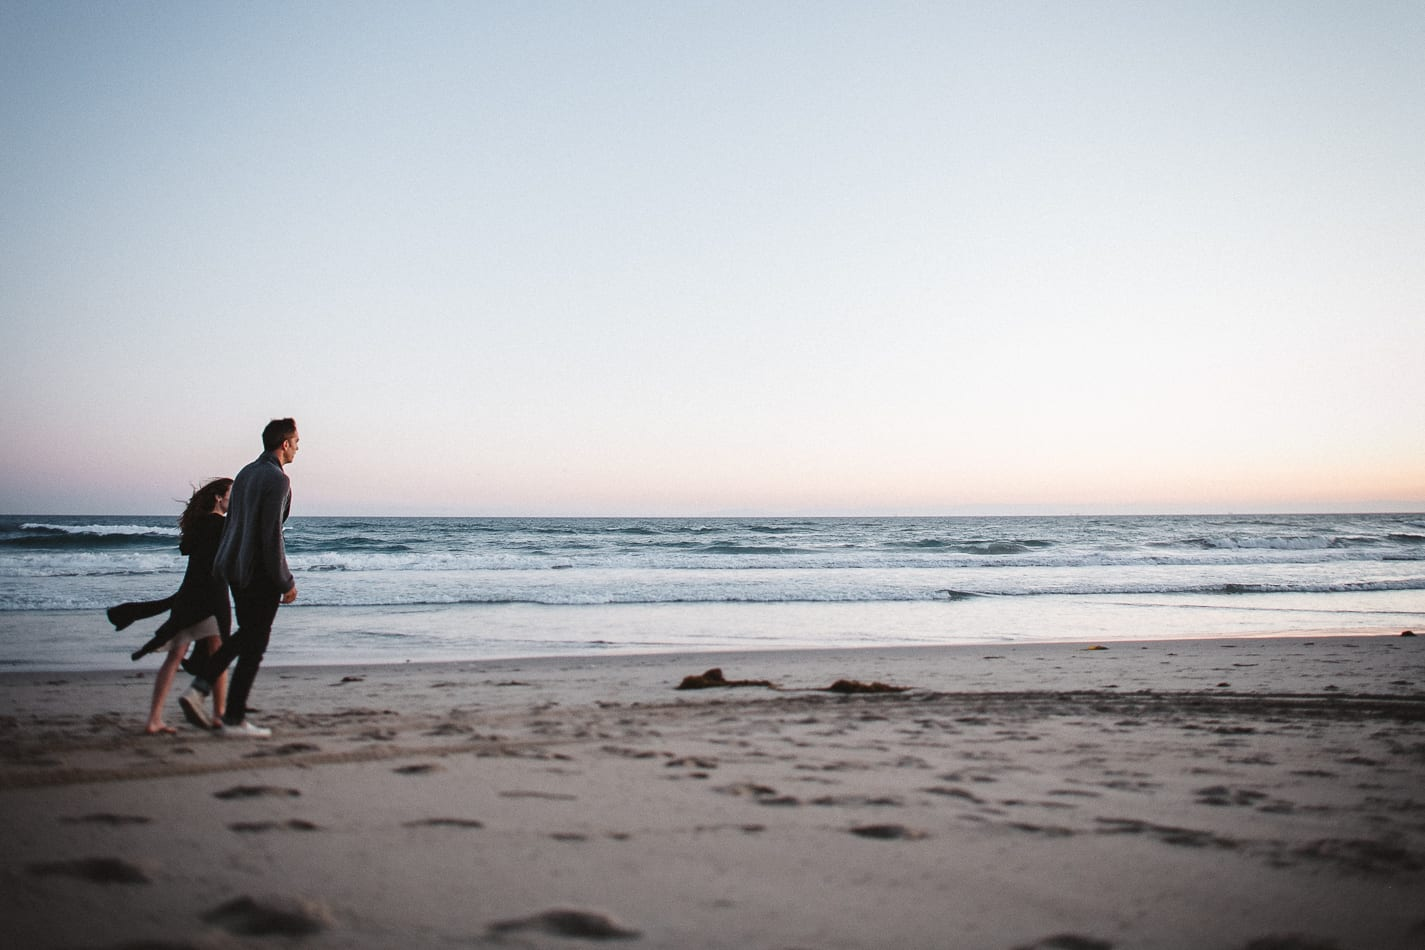 jason-alyssa-huntington-beach-california-engagement-photographer-38